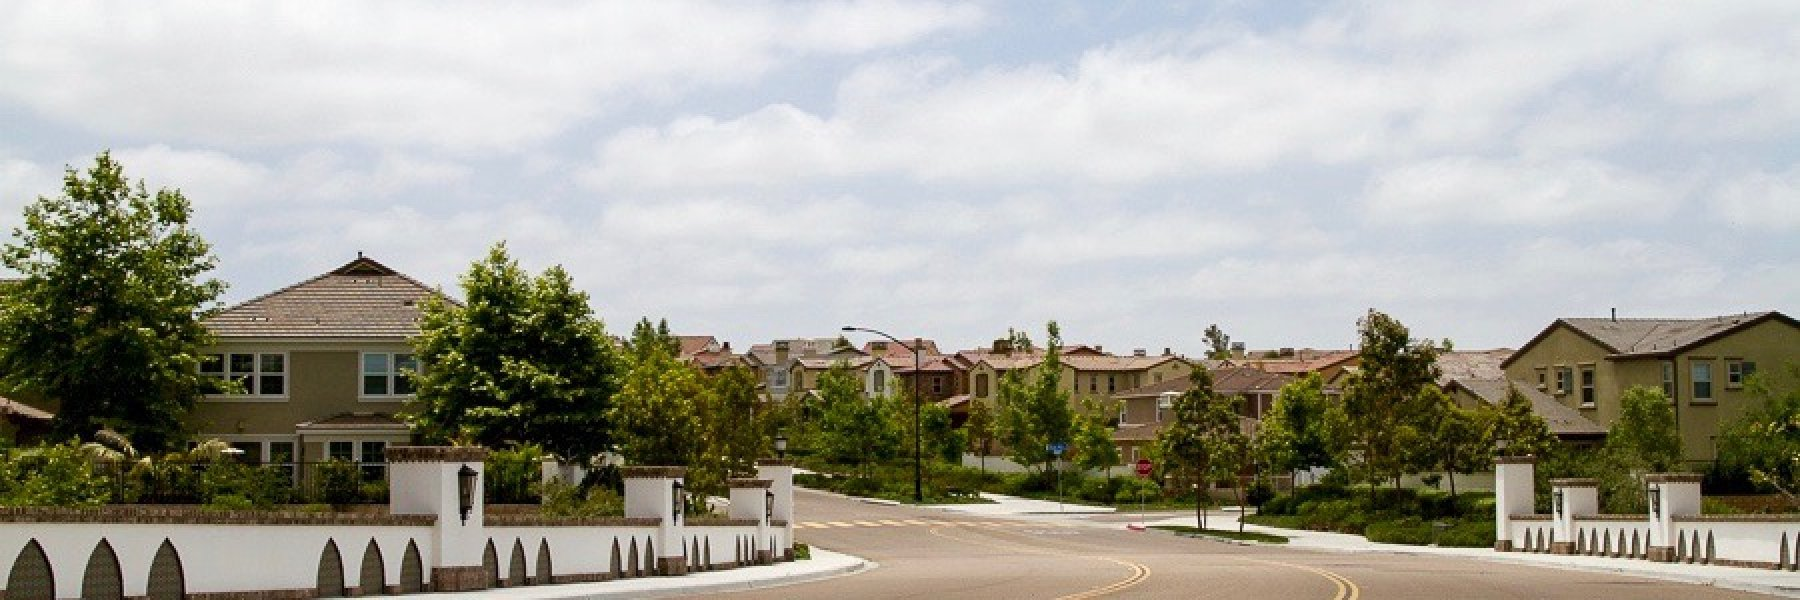 Elms is a community of homes in San Diego California